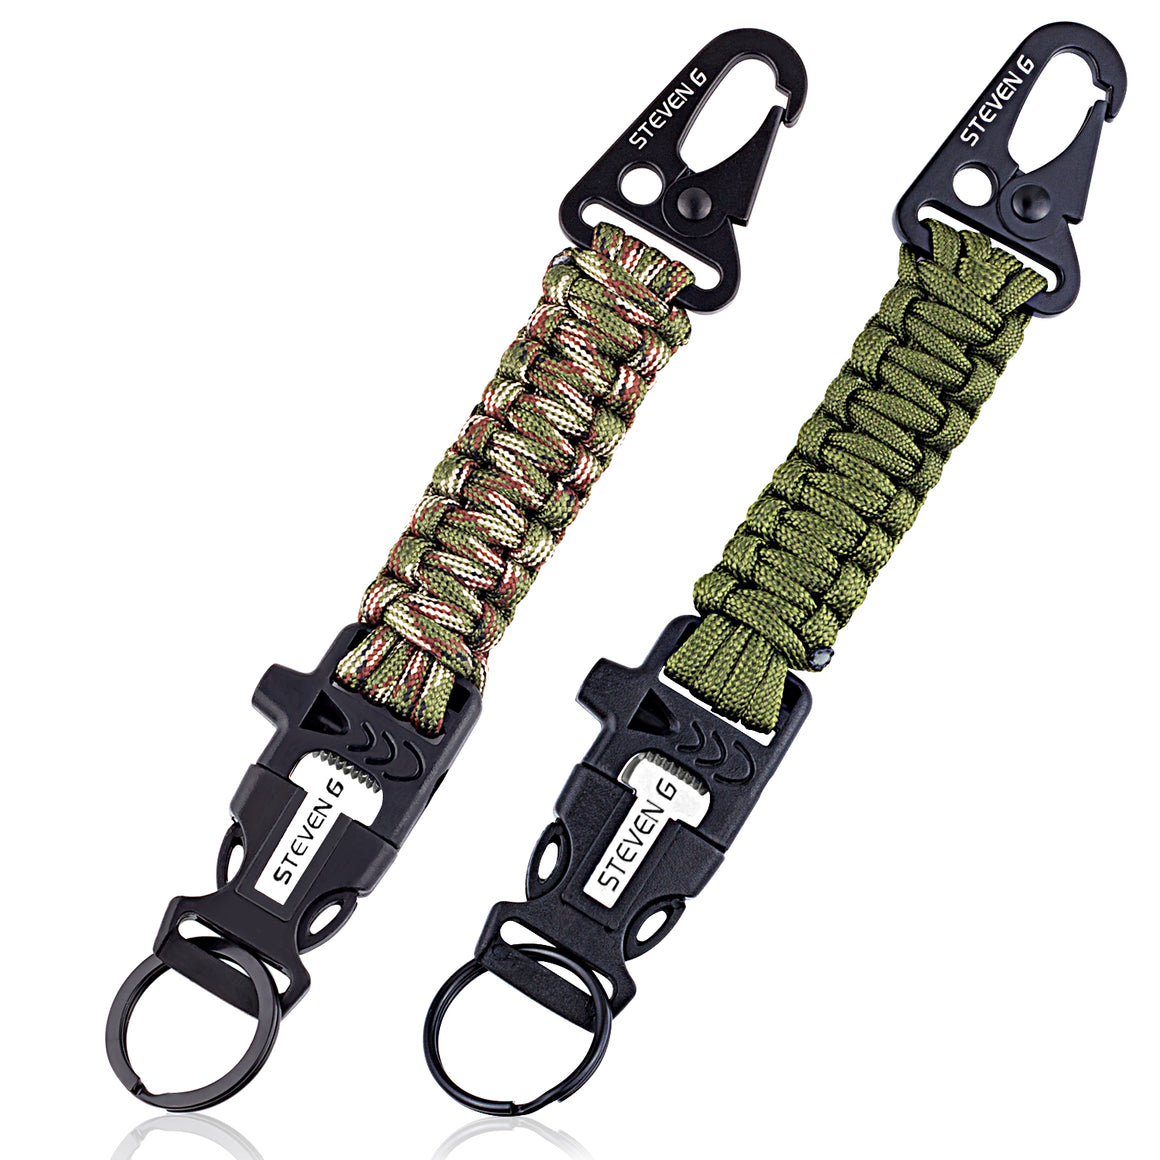 Steven G Paracord Carabiner Survival Keychain with Firestarter and Whistle - (pack of 2) PCKC062AGCA